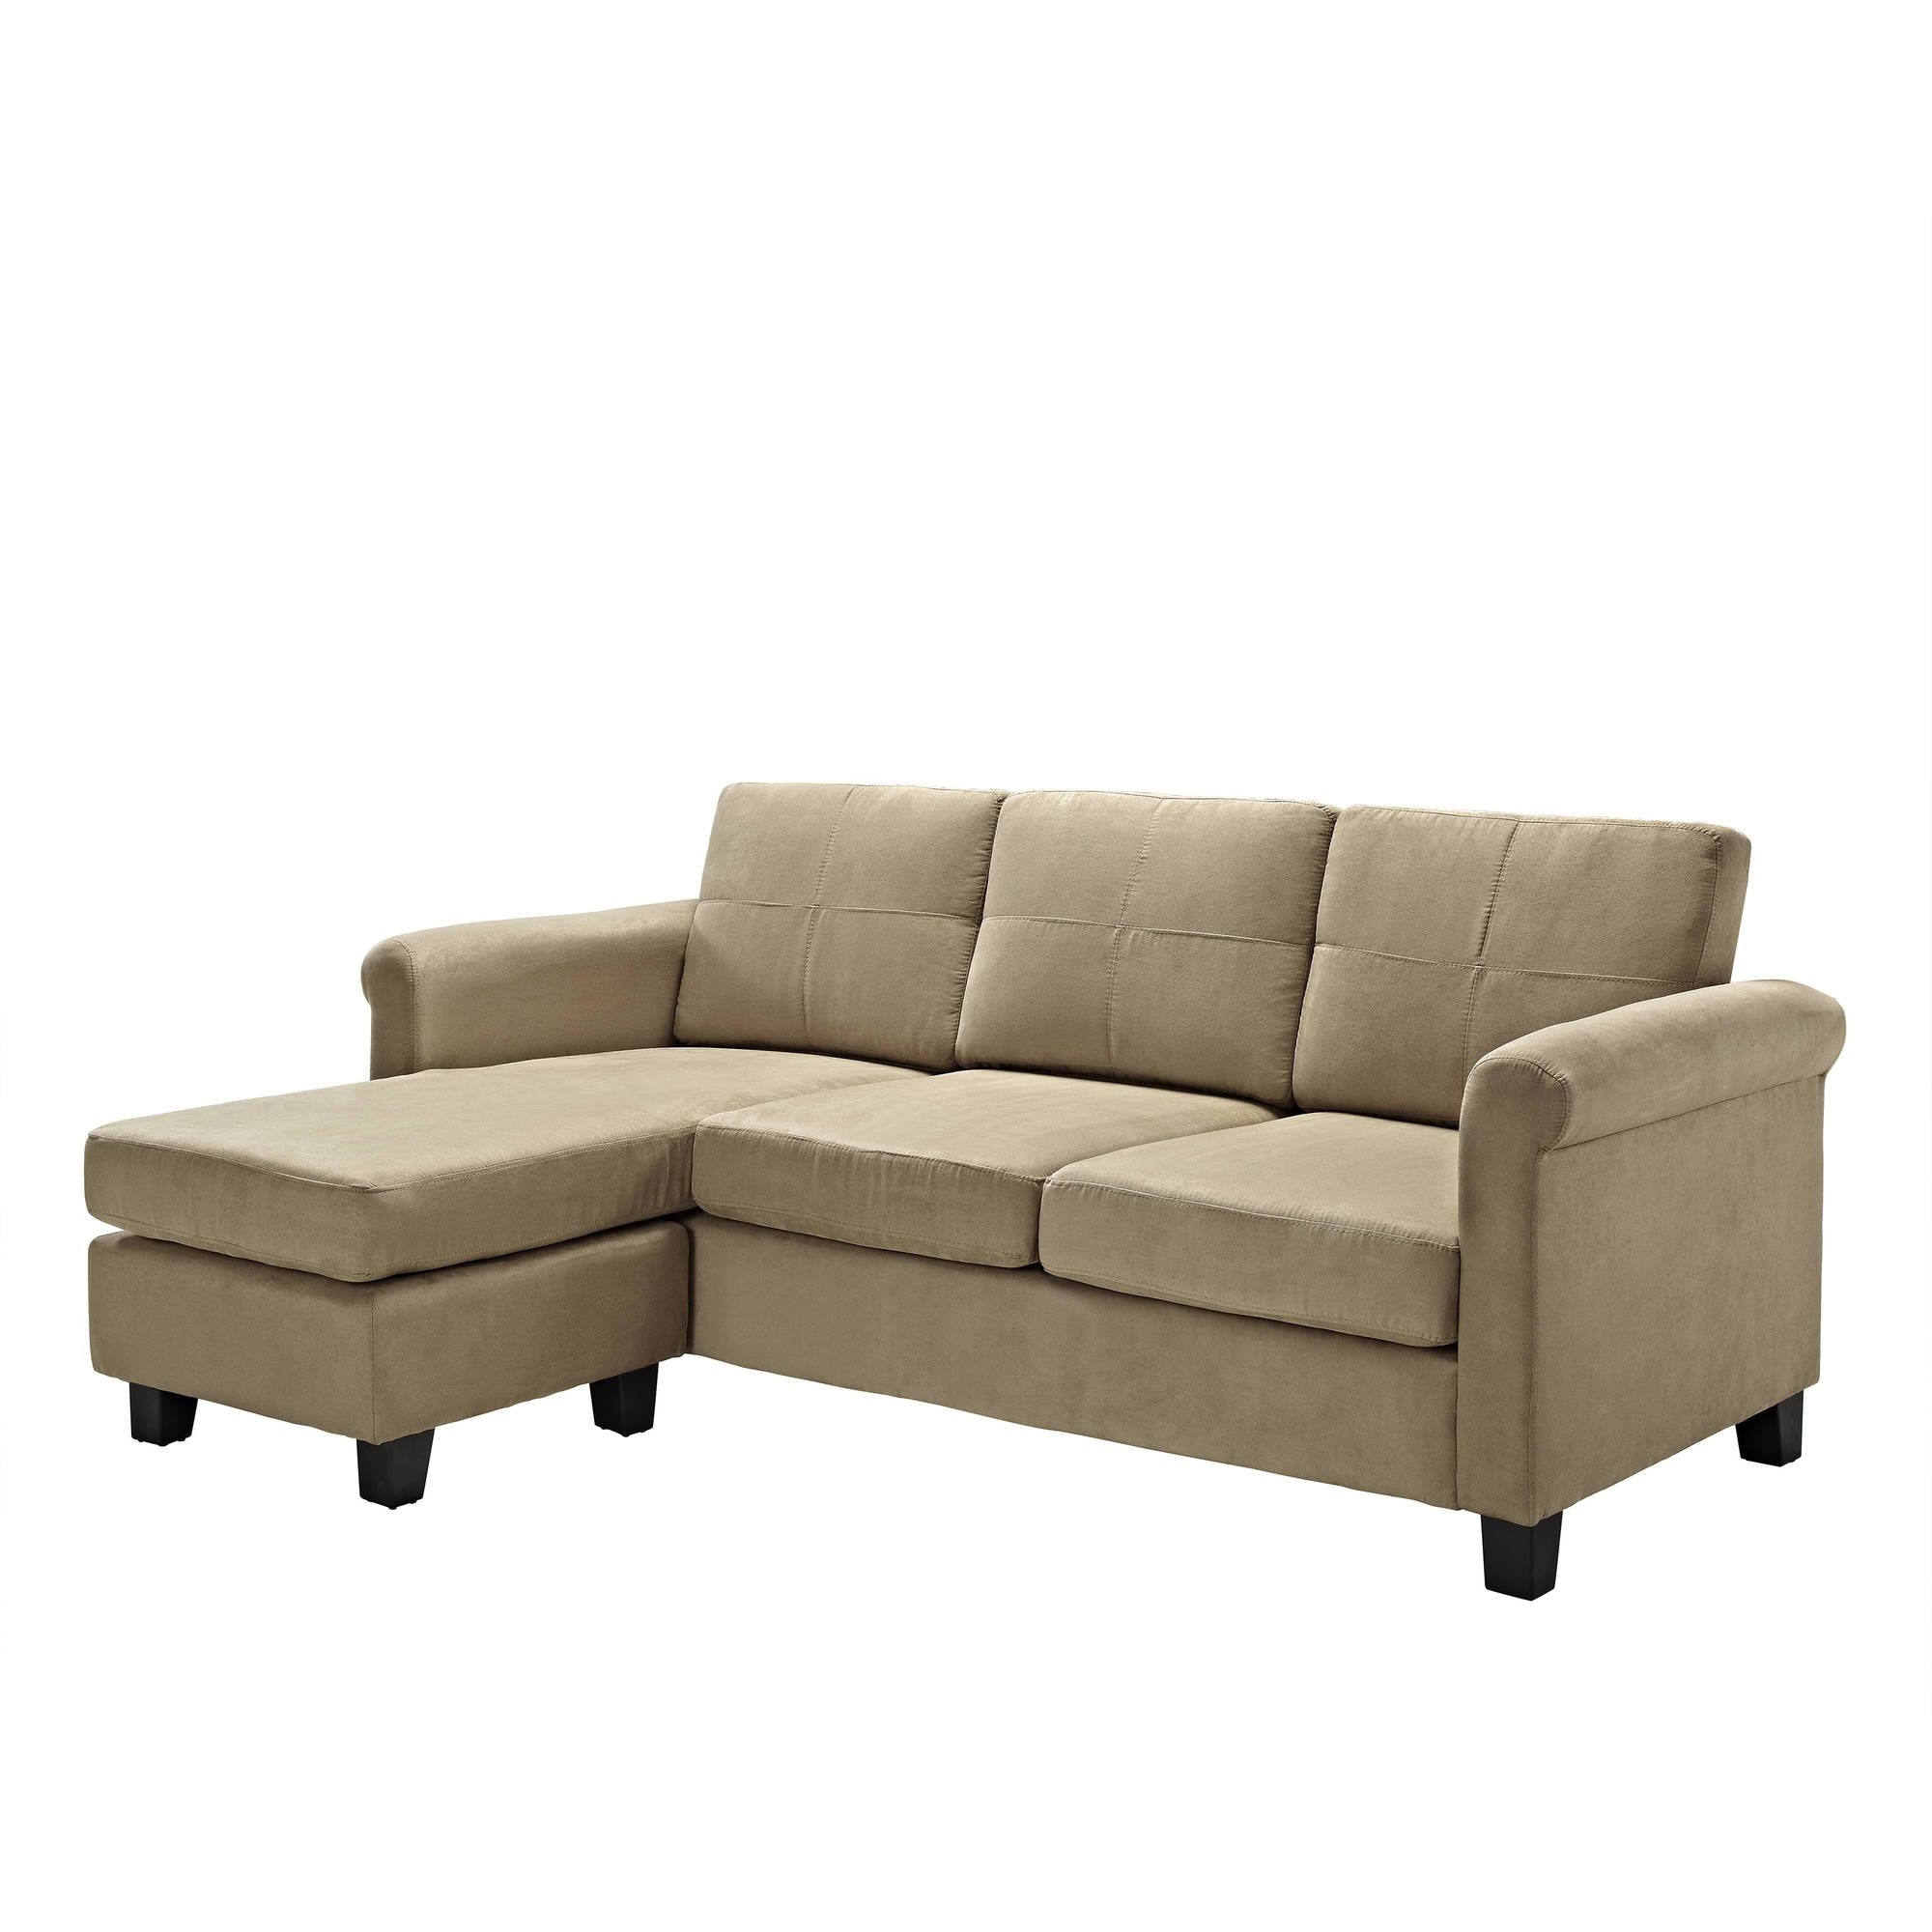 Dorel Living Small Spaces Configurable Sectional Sofa, Multiple With Newest Small Sofa Chaises (View 5 of 15)